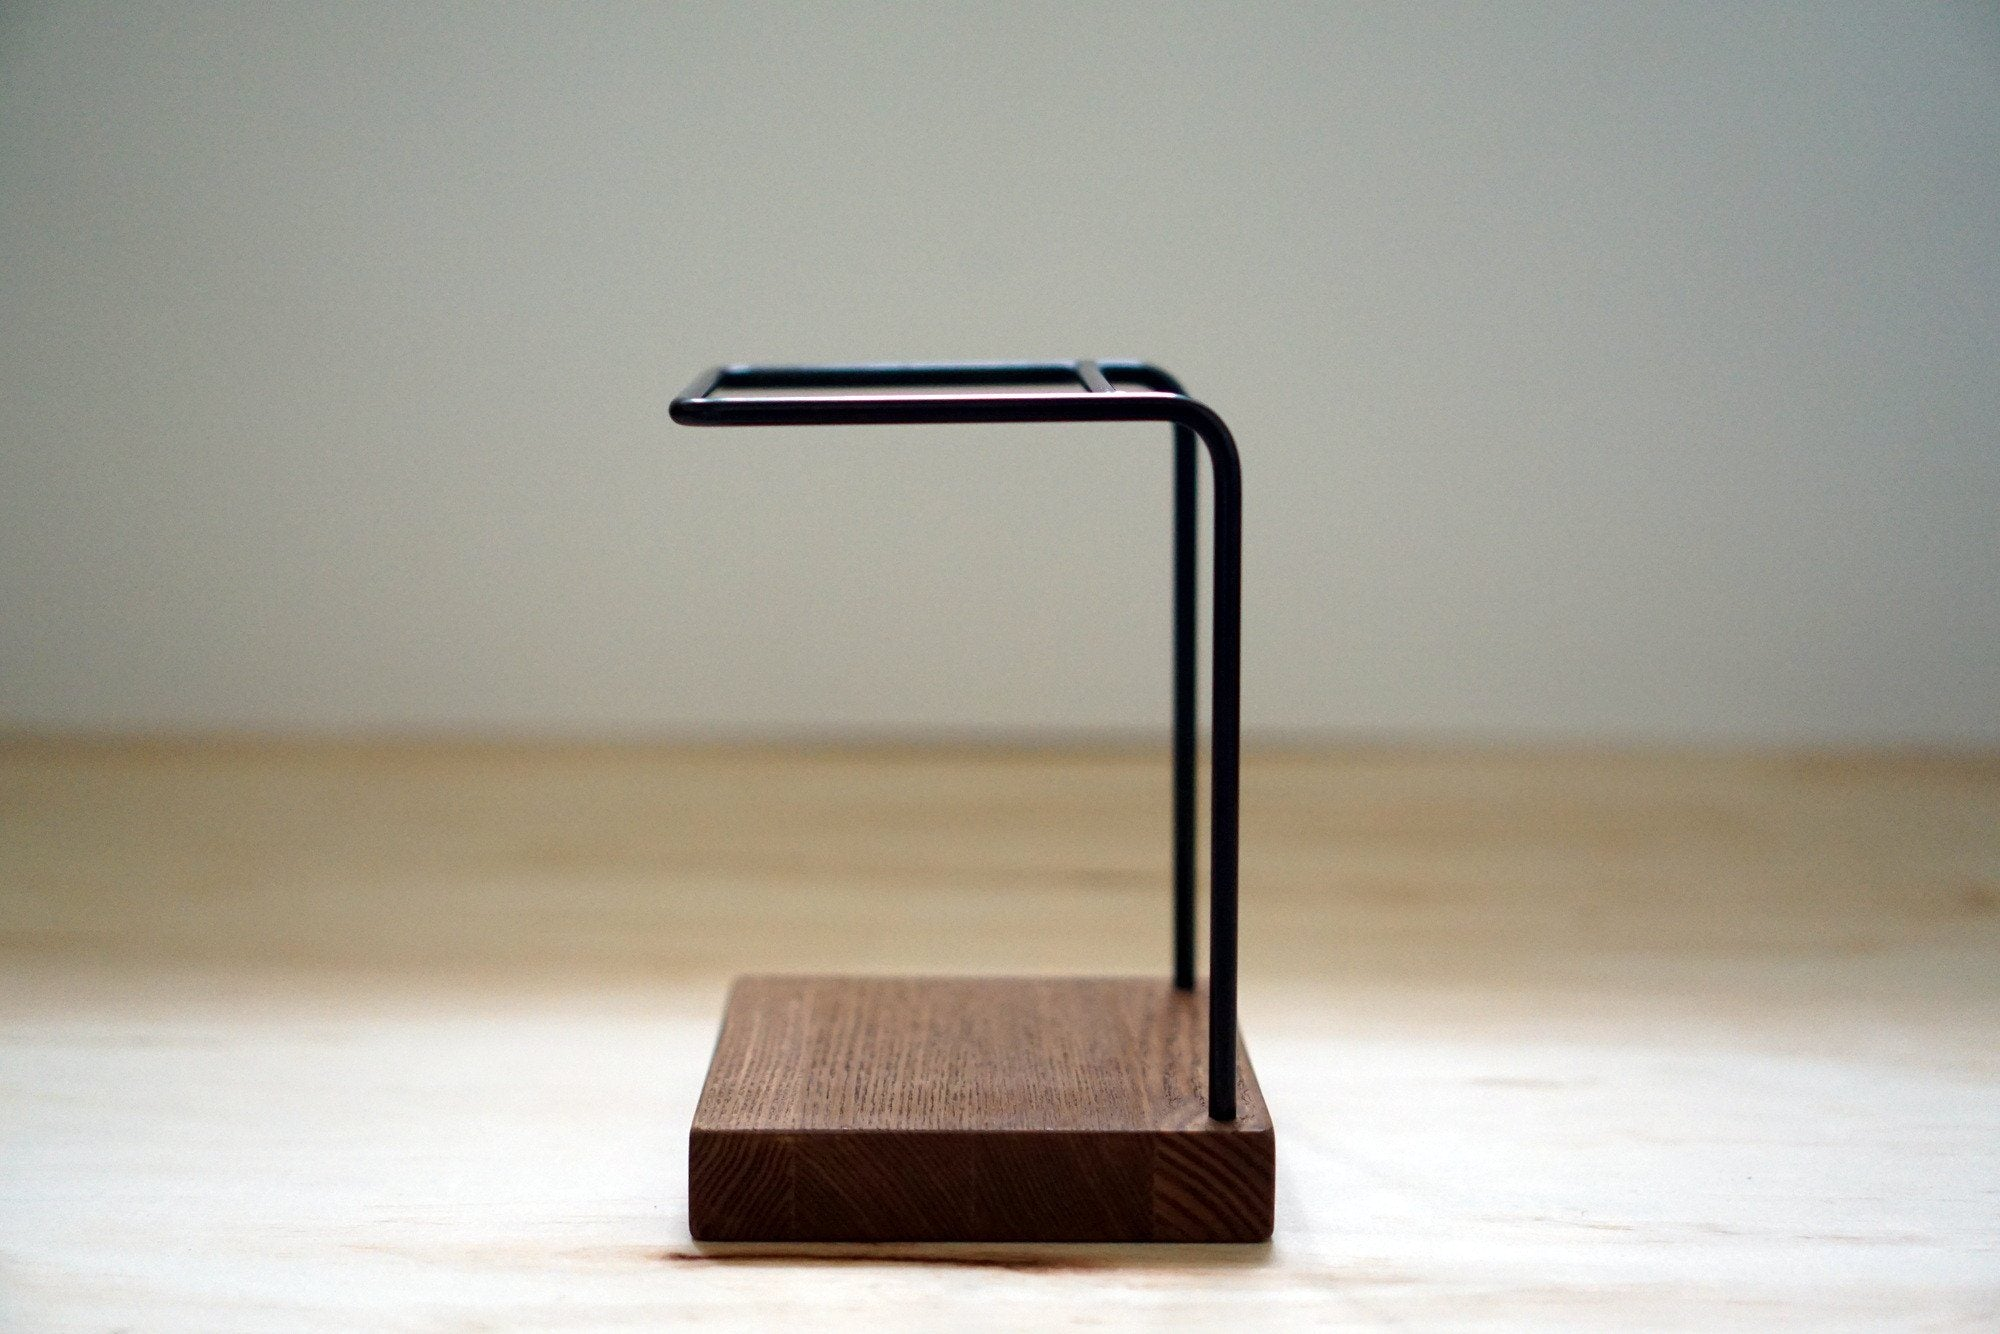 Halo Coffee Dripper Stand Stand Halo Halo Coffee Dripper